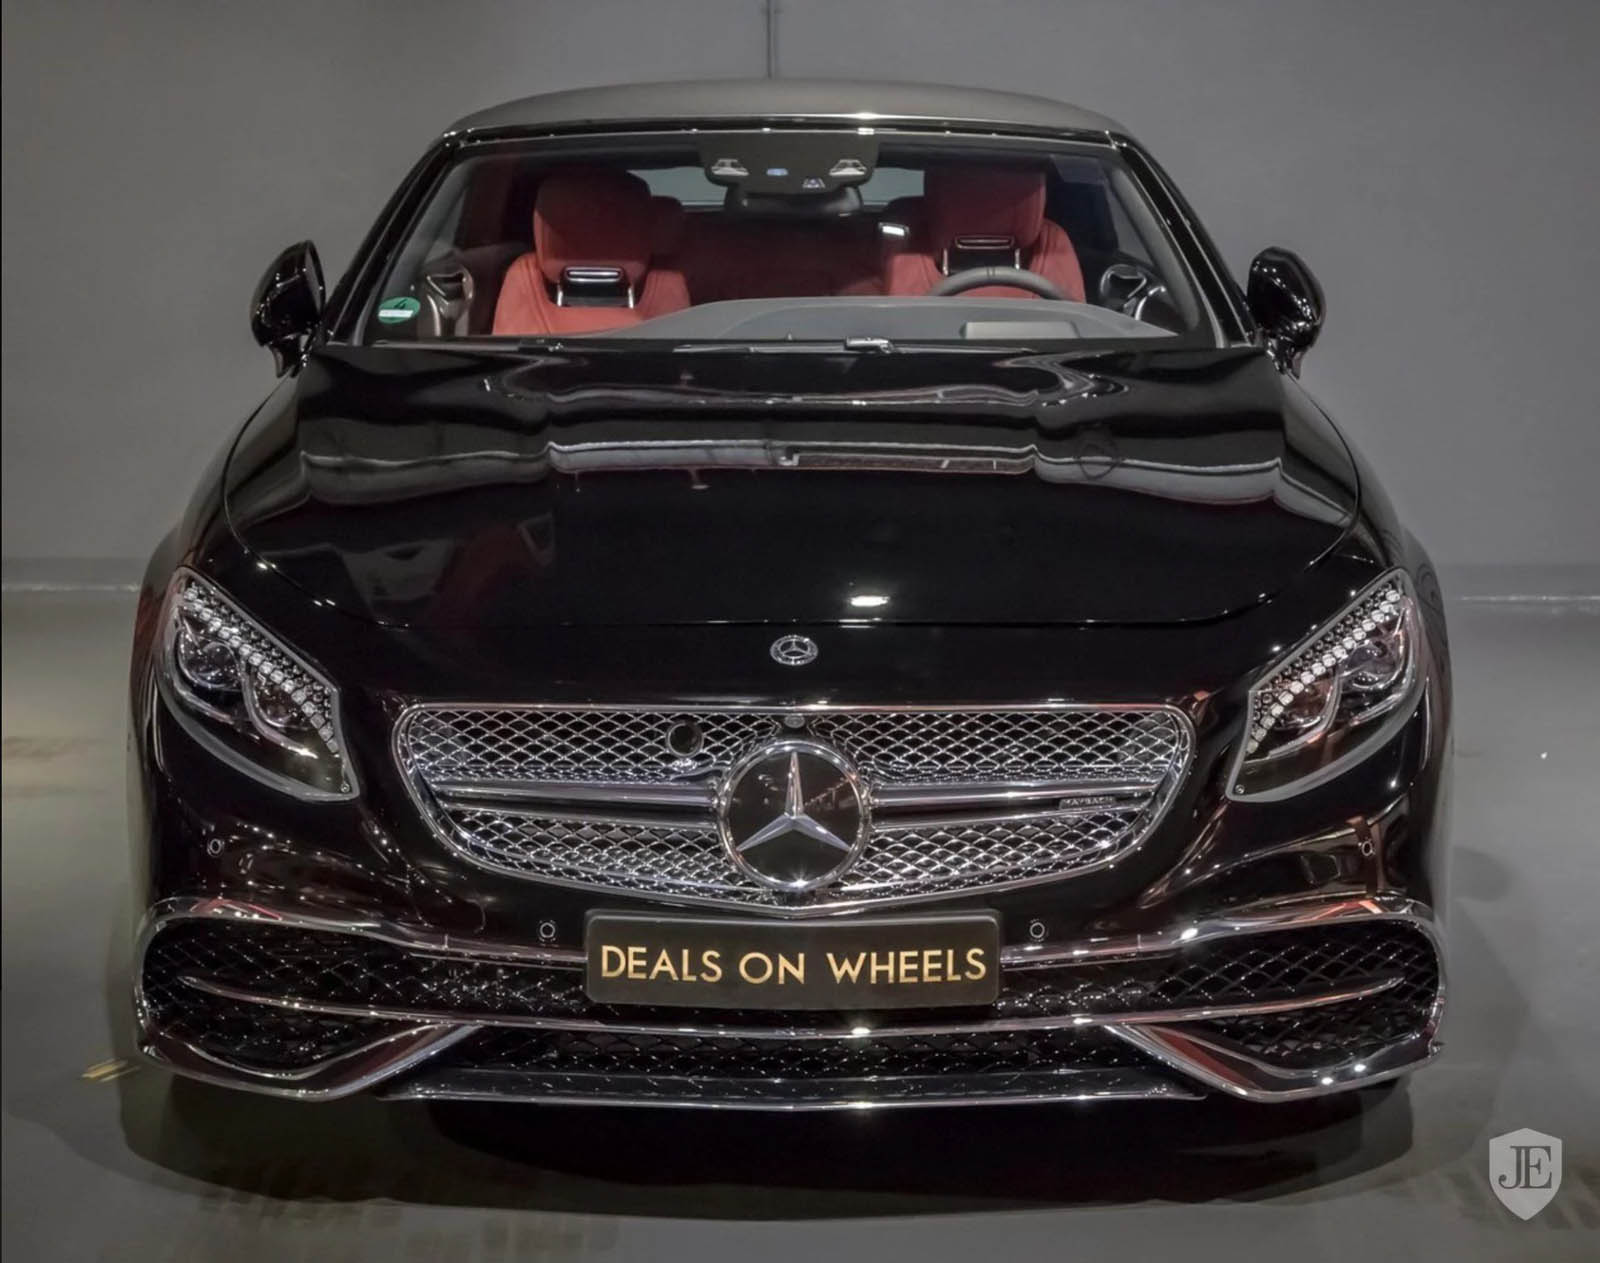 FormaCar: Deals on Wheels exhibits hi-end Mercedes-Maybach S650 ...